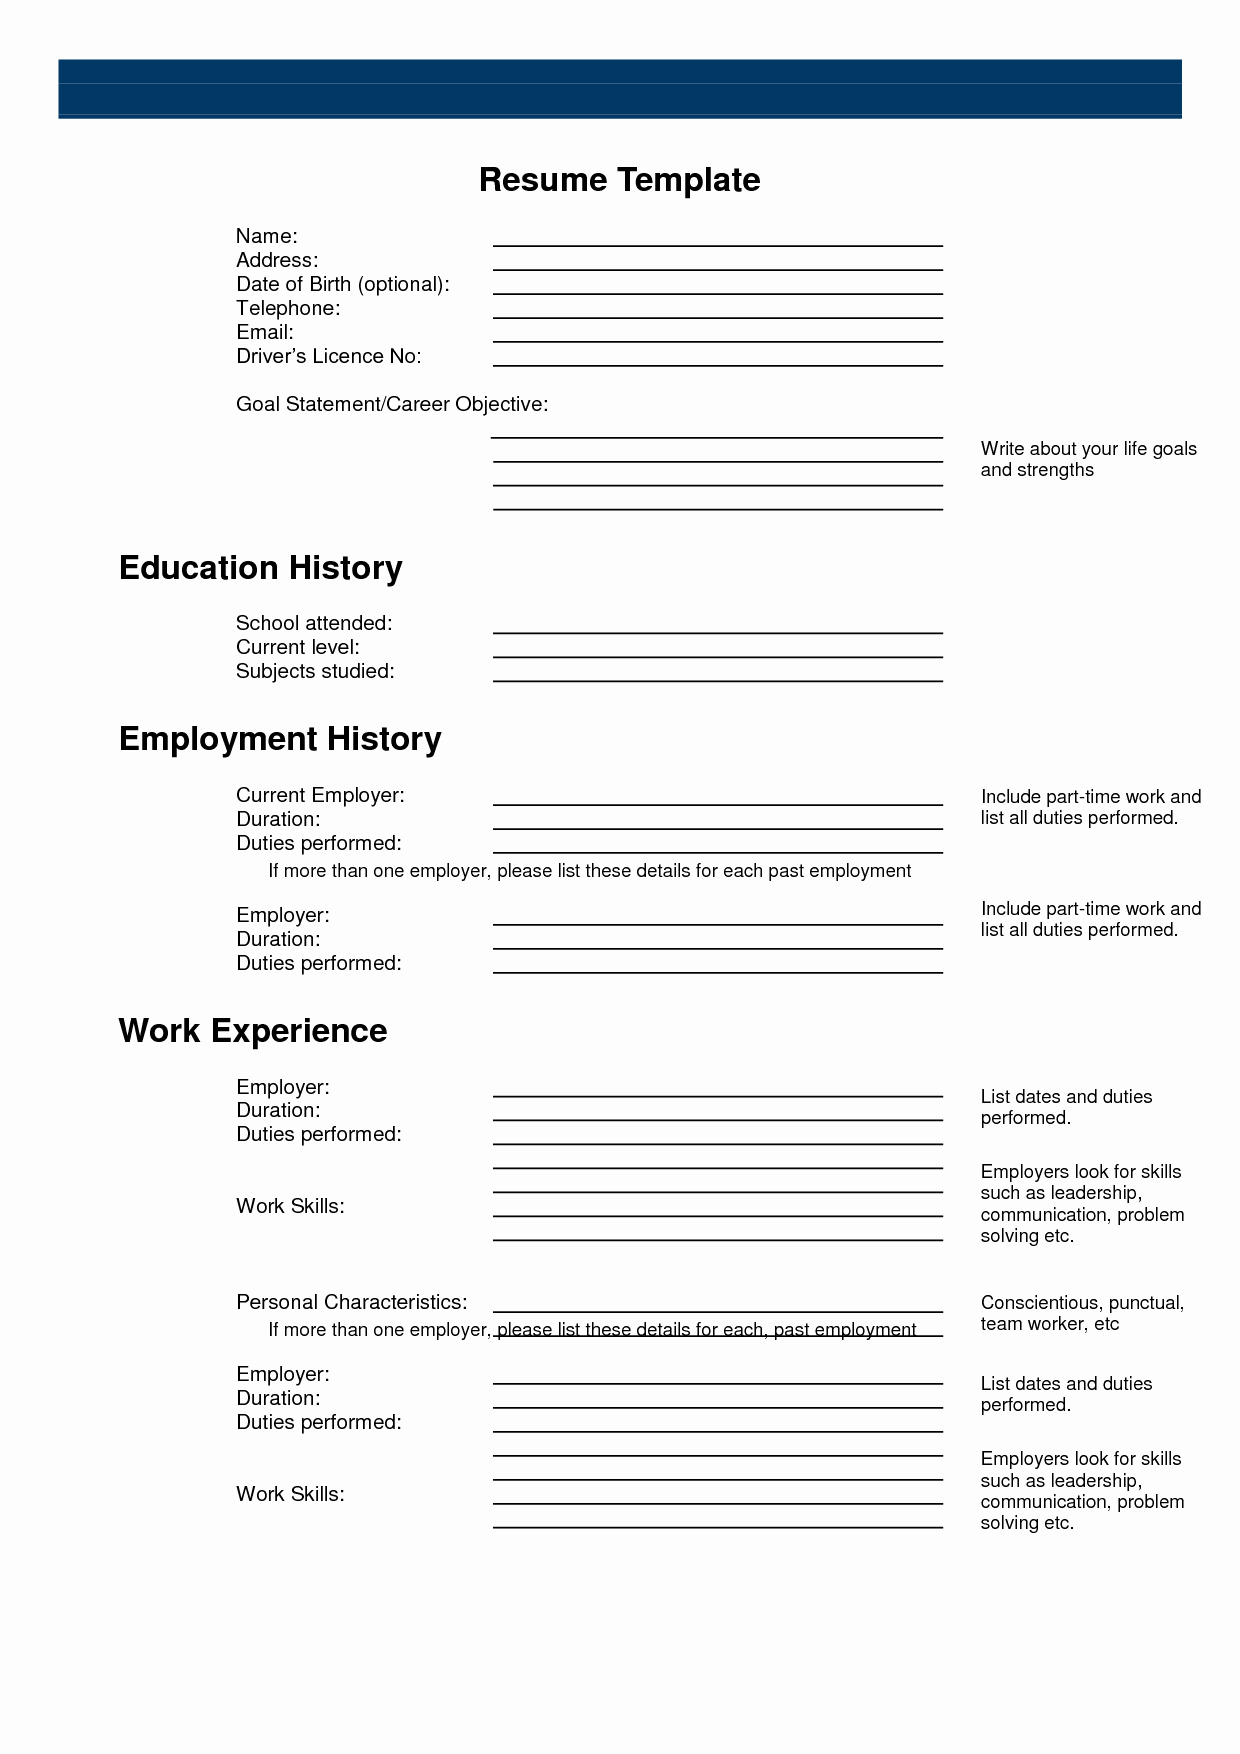 Resume forms Printable Blank Ms Word Fill In Line Free